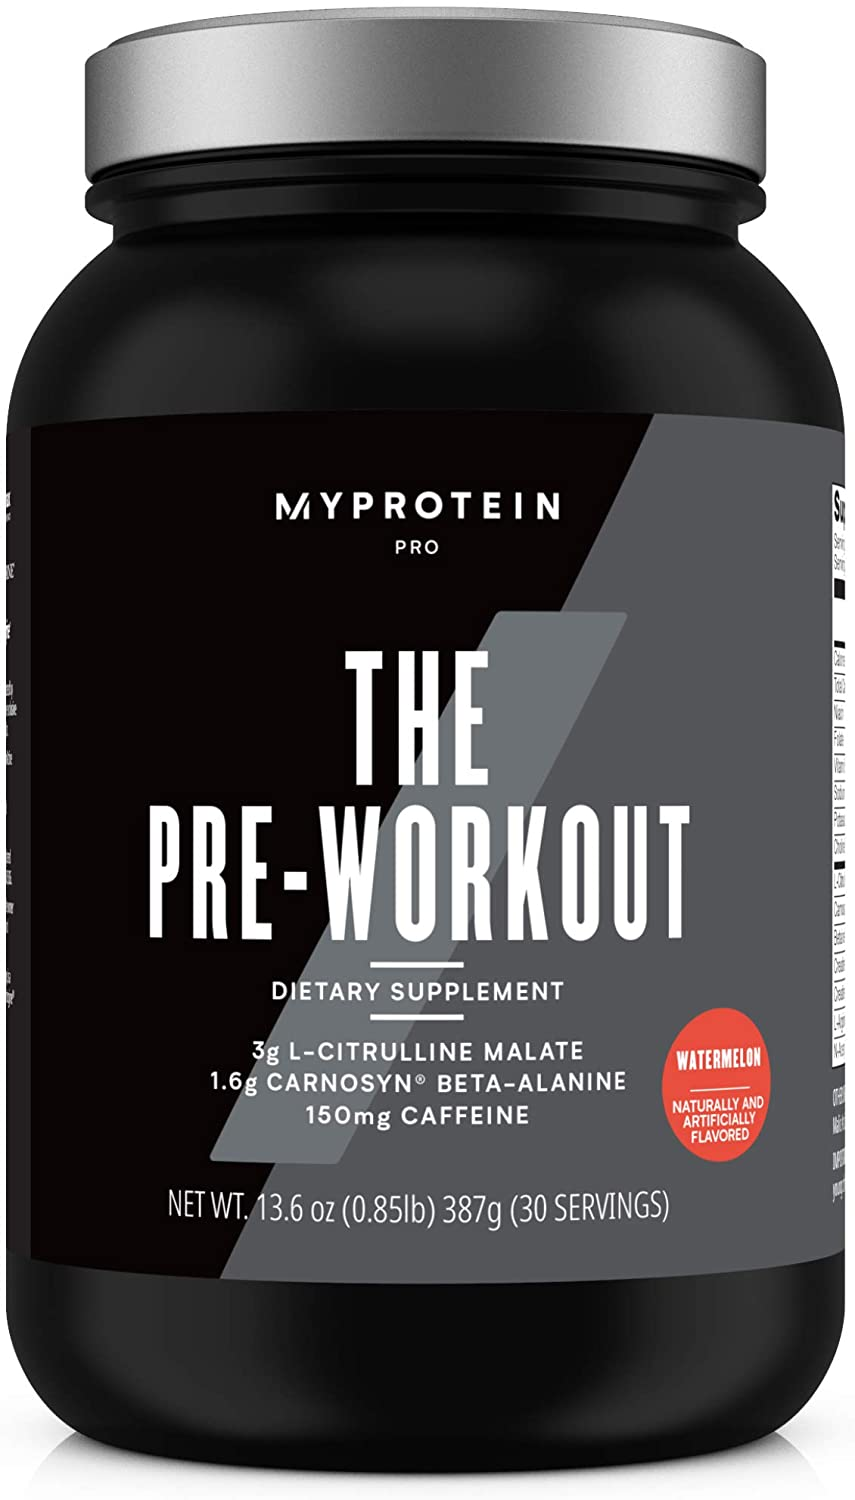 Pre Workout with Creatine Mono-Hydrate and Caffeine - 30 Servings - Plus L-Glutamine, BioPerine, AstraGin, Capsimax, TeaCrine - PreWorkout Booster for Energy, Building Muscle, Watermelon